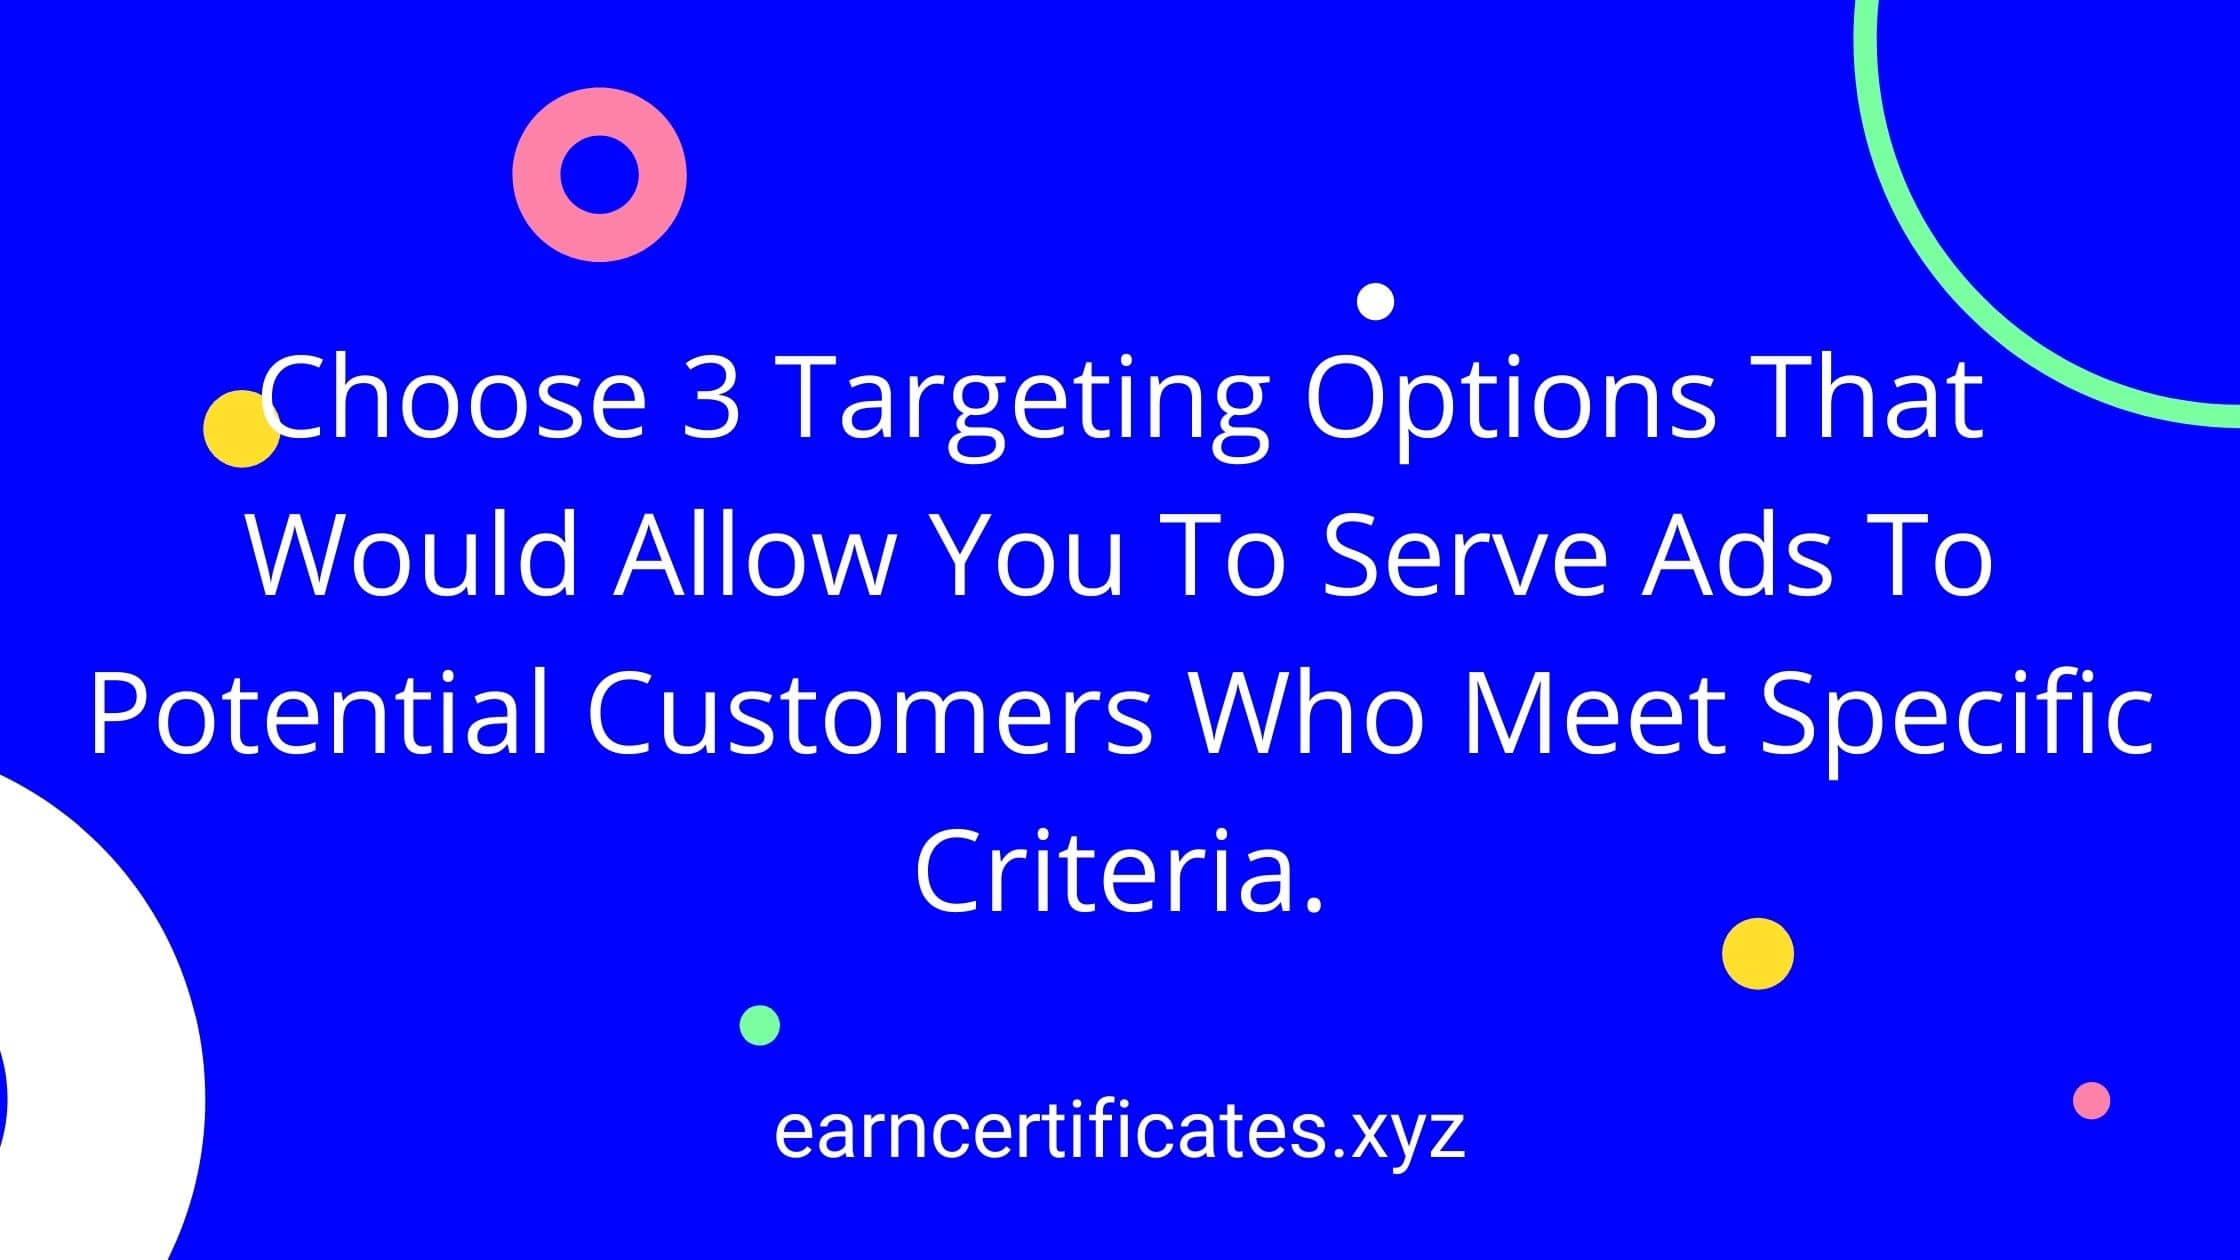 Choose 3 Targeting Options That Would Allow You To Serve Ads To Potential Customers Who Meet Specific Criteria.